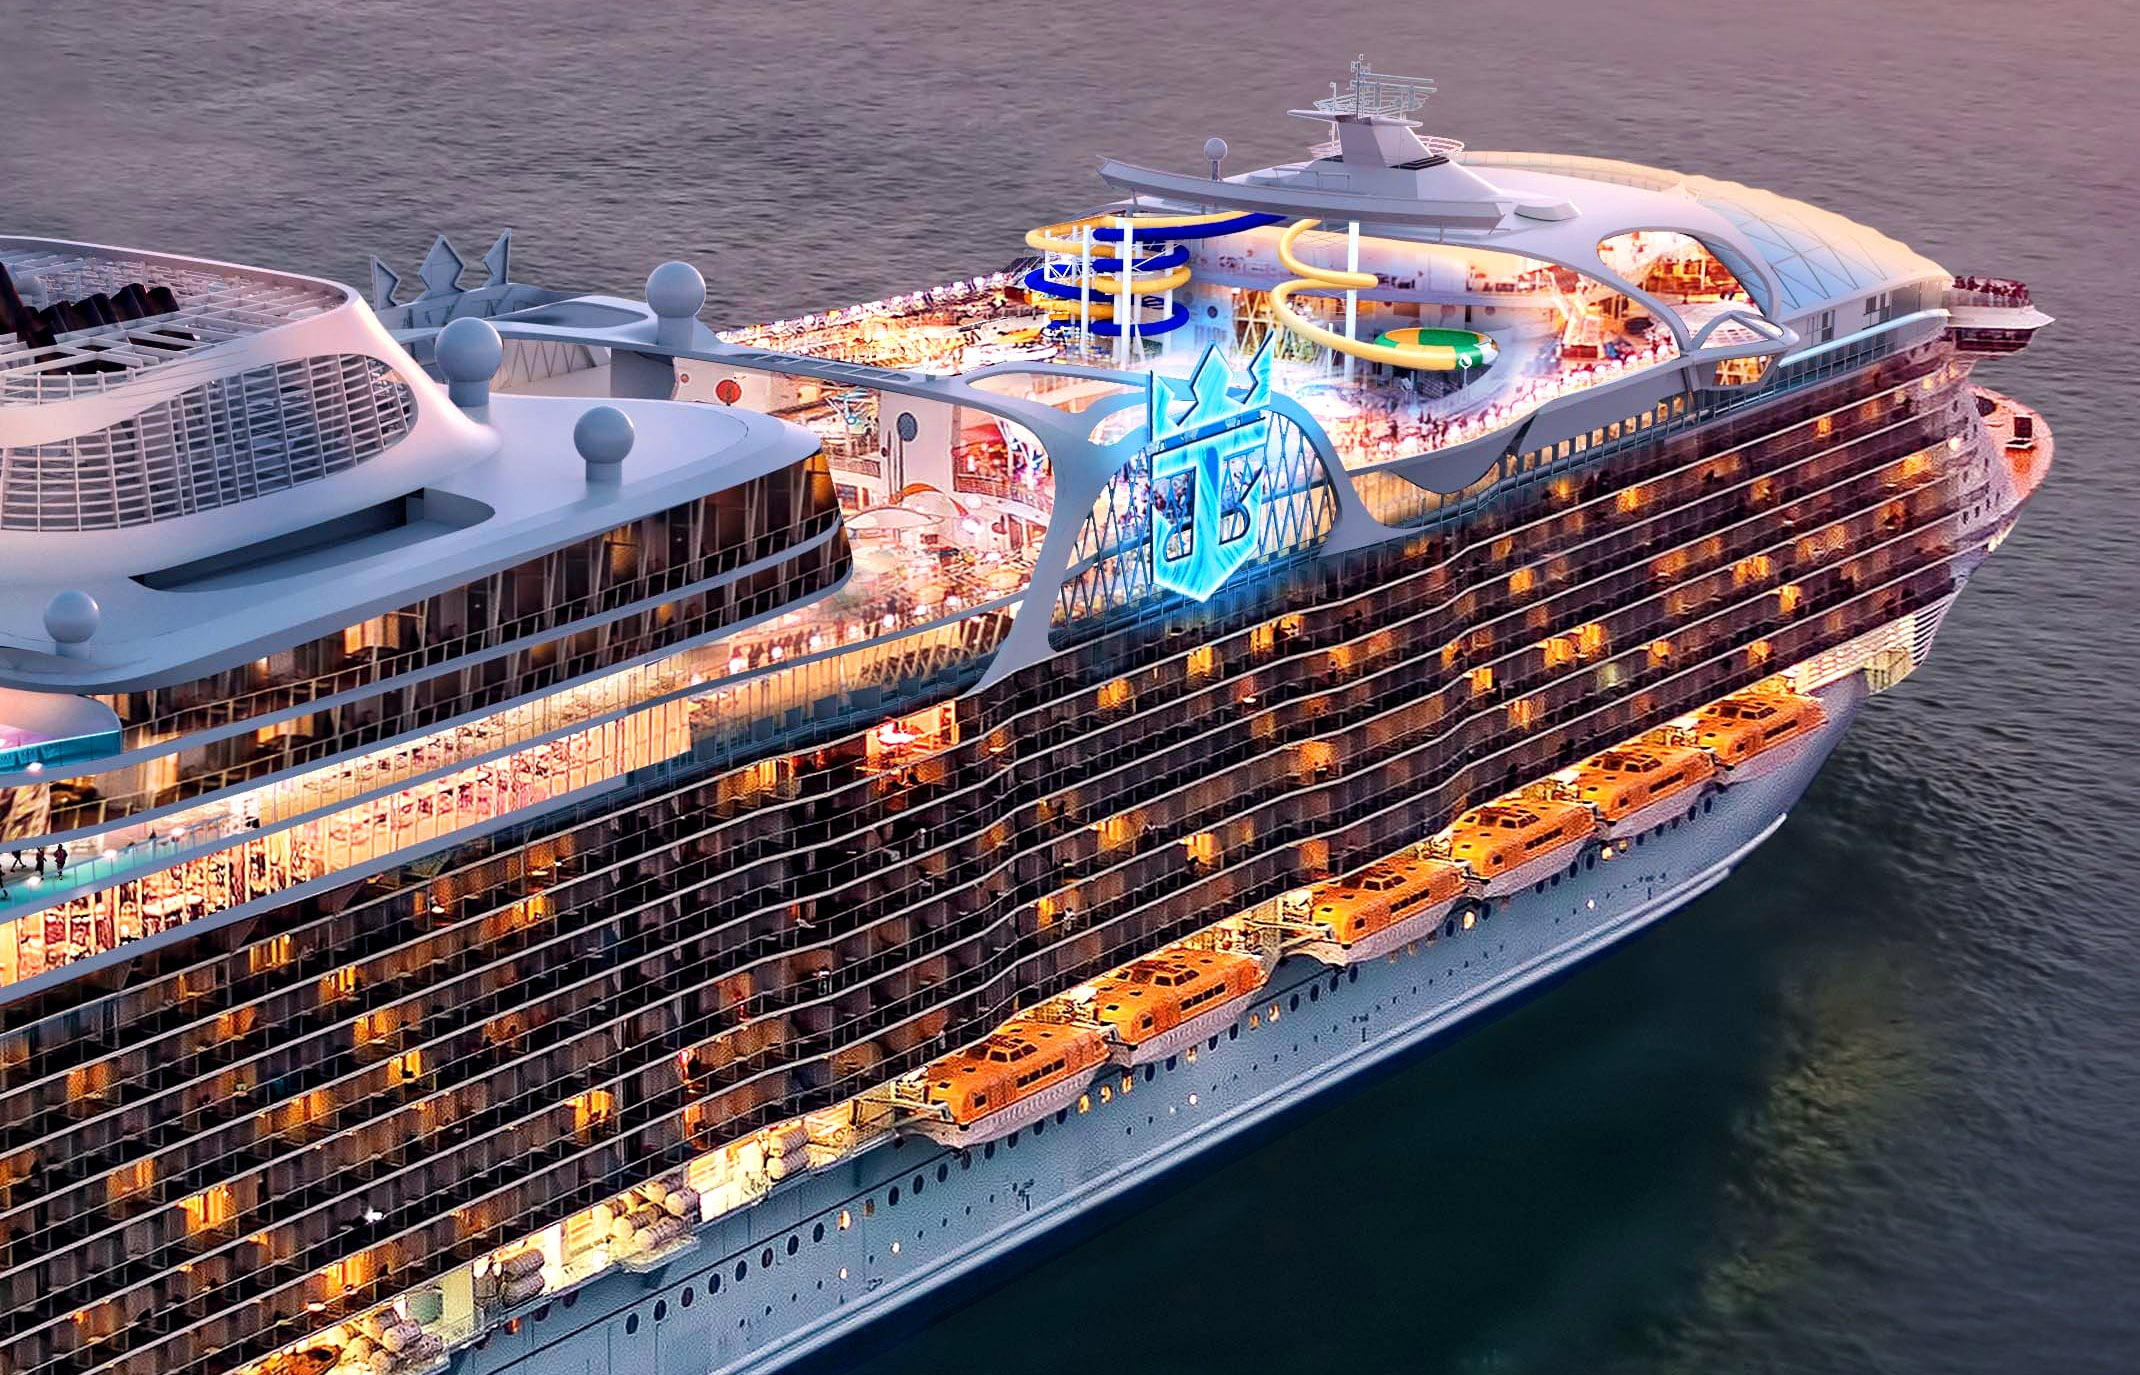 Royal Caribbean's Wonder of the Seas will be the World's Largest Cruise Ship When it Debuts in 2022